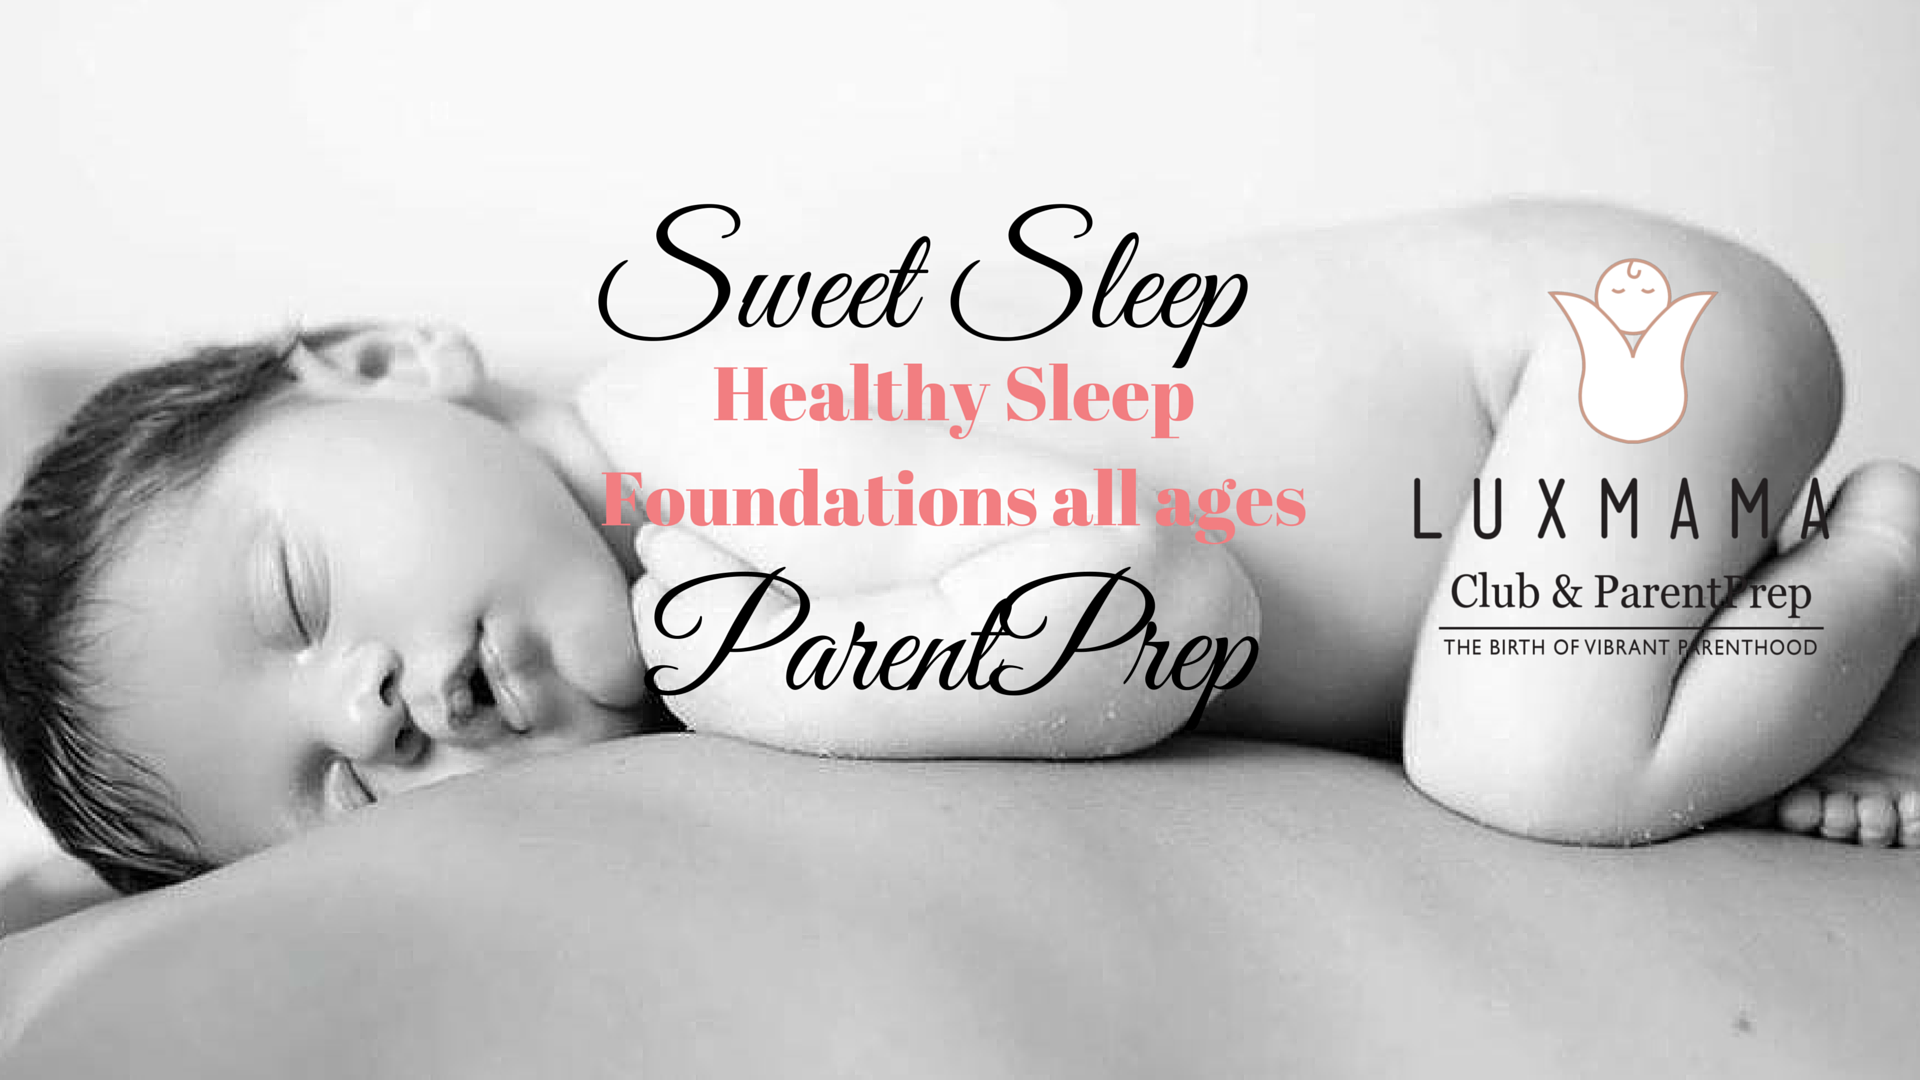 Sweet Sleep: Foundations